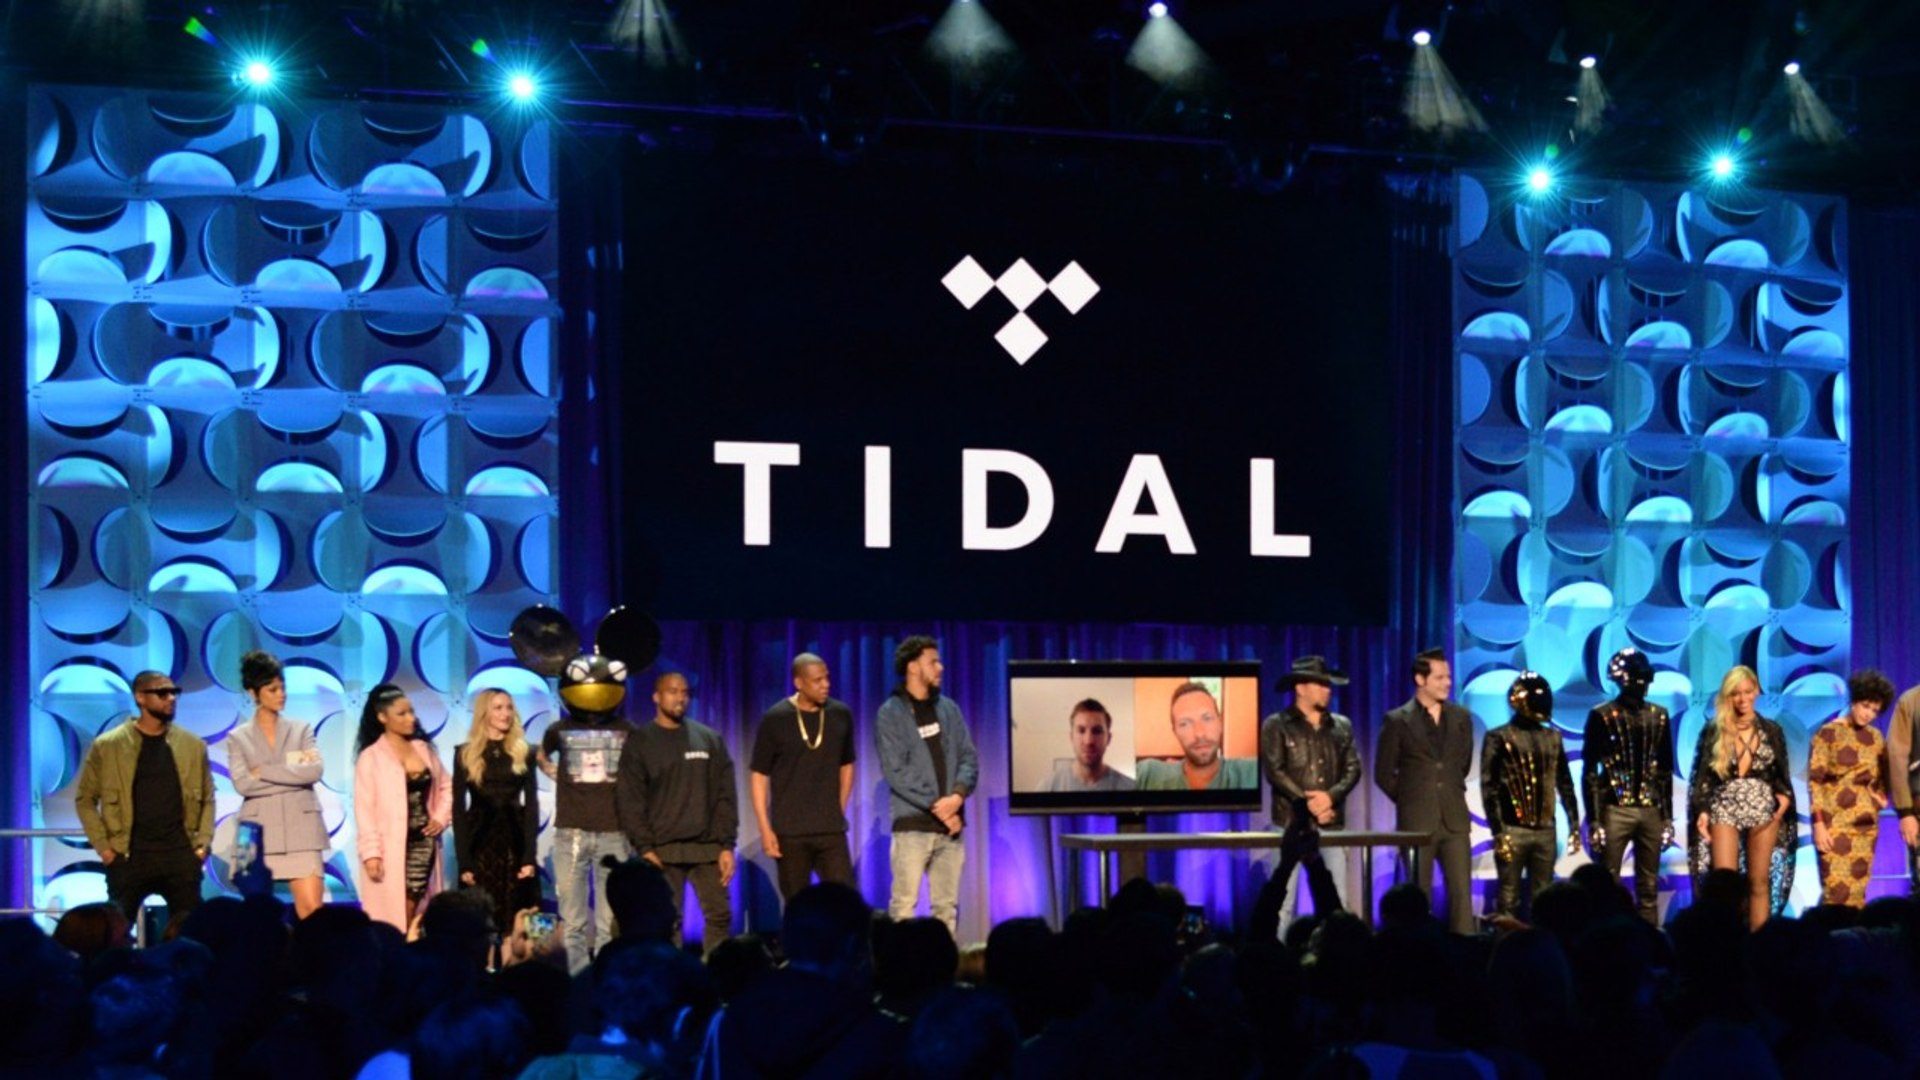 Is Music Site Tidal Running Out of Money?